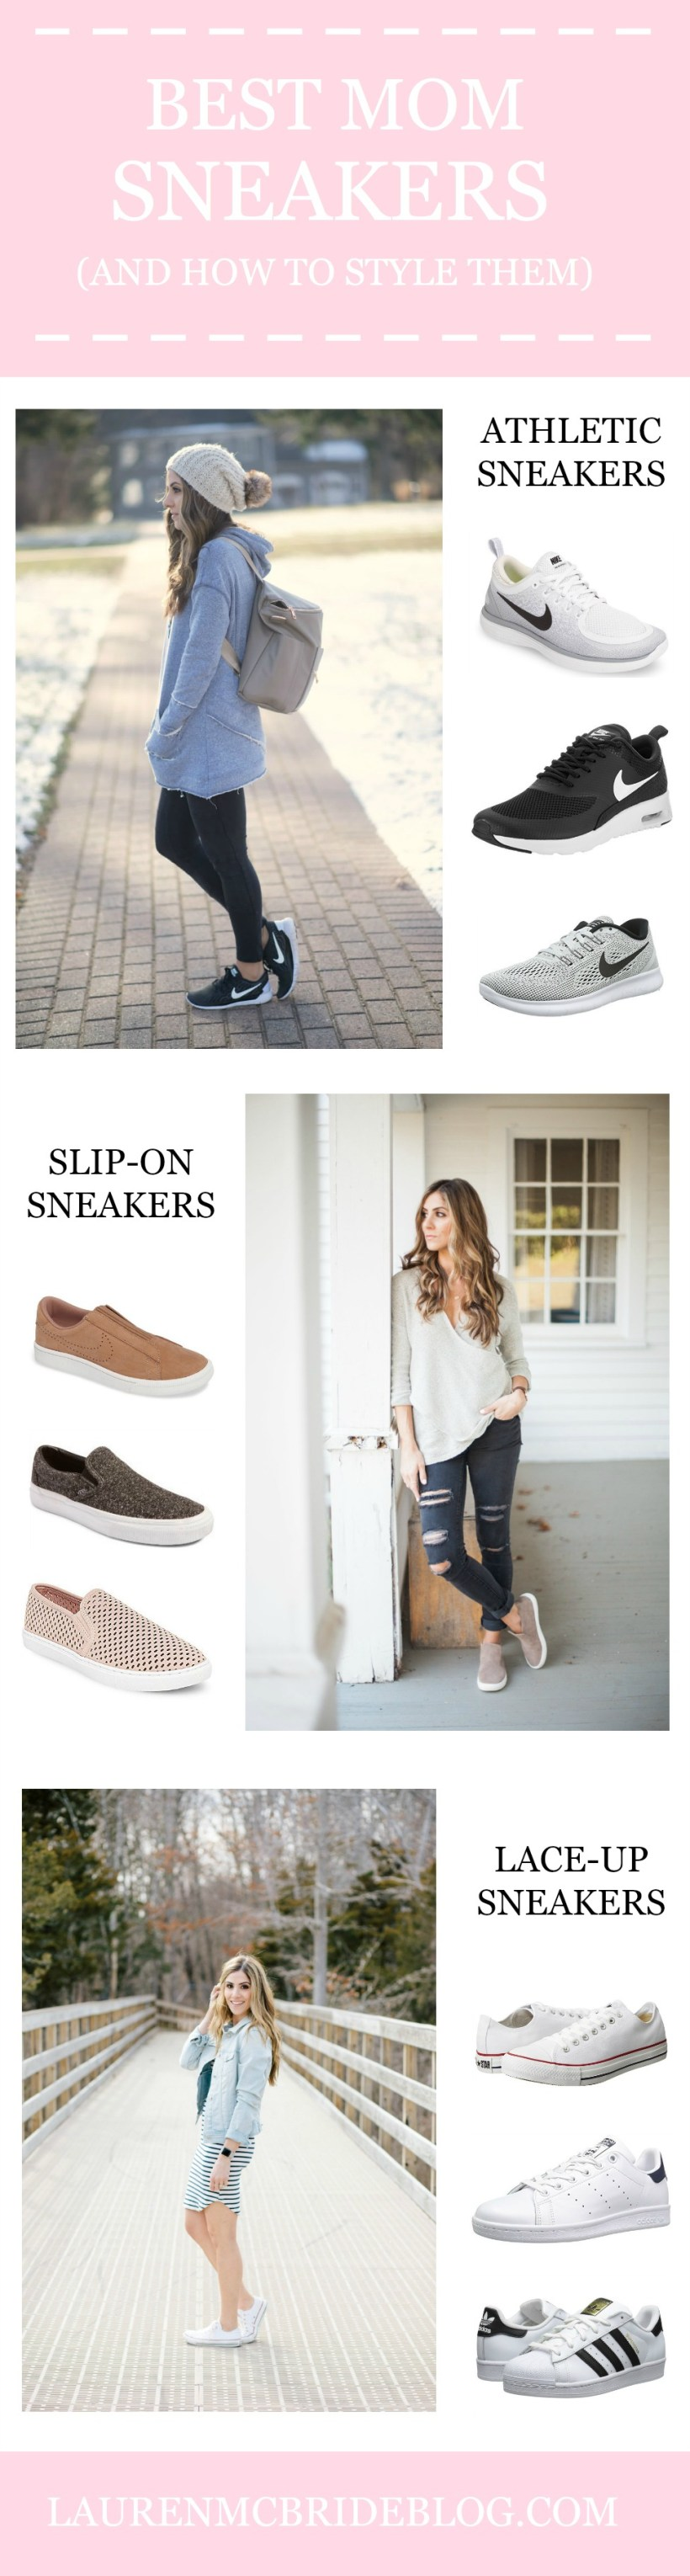 A round up of the Best Mom Sneakers, including athletic, slip-on, and lace-up varieties, and how to style them for comfort and fashion!